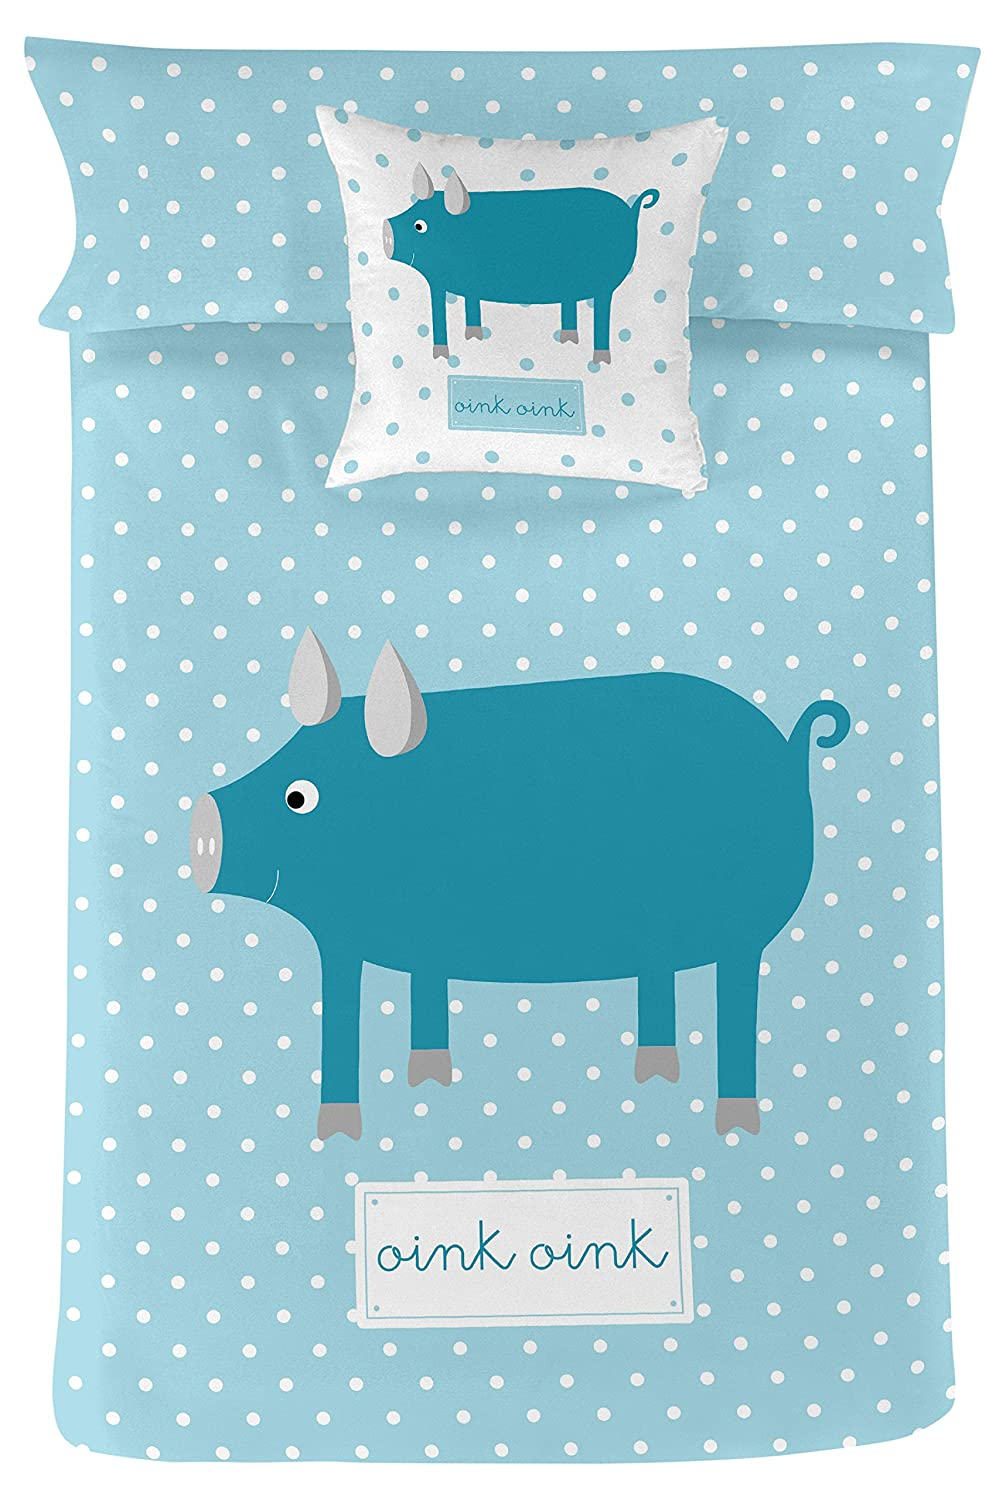 Rubio Hogar Blonde Home Game Nordic Oink 220 x 150 x 3 cm turquoise ...